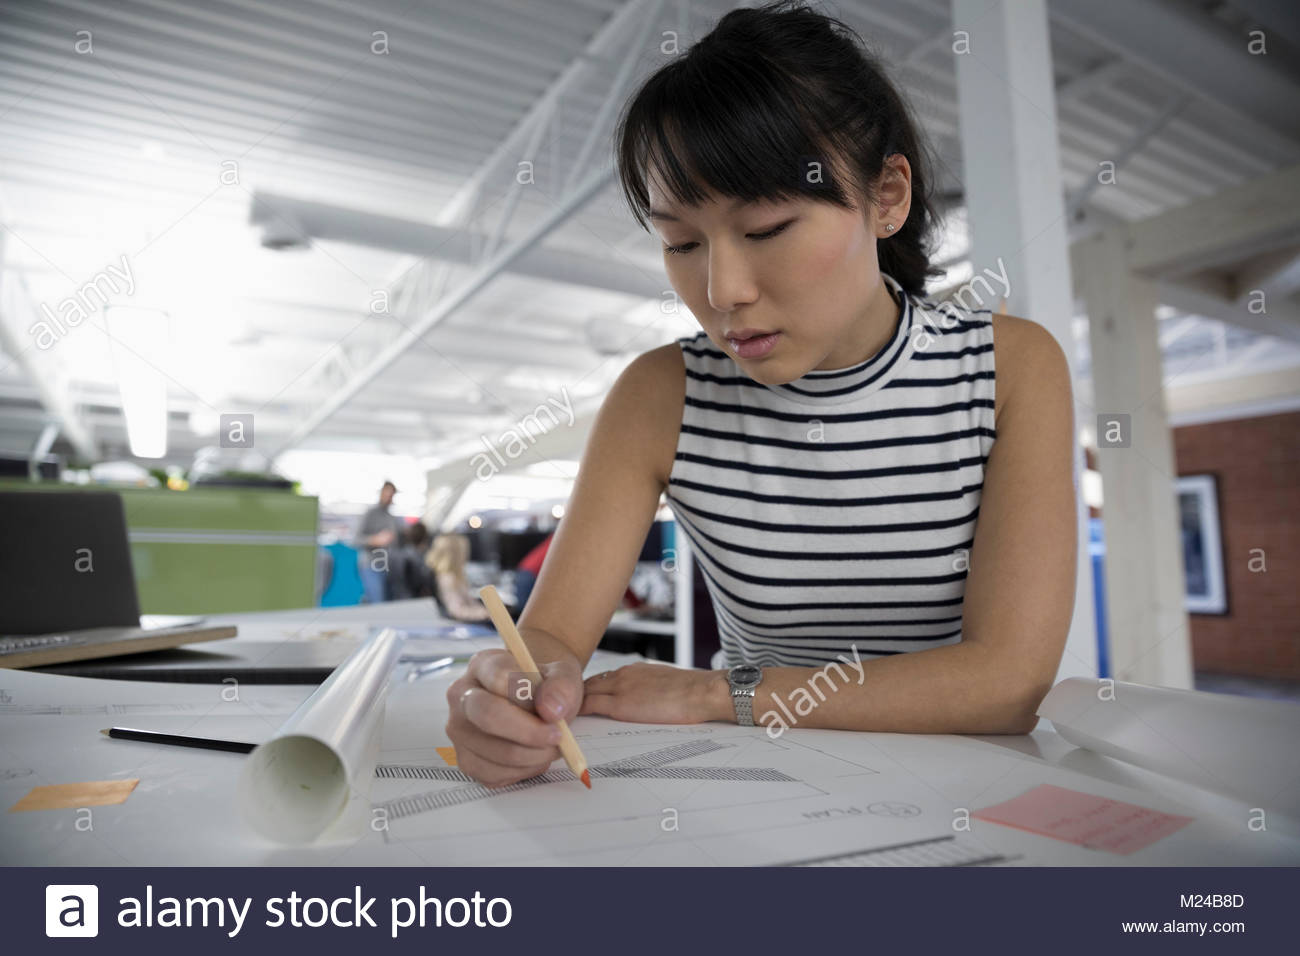 Focused architect drafting blueprints in office - Stock Image